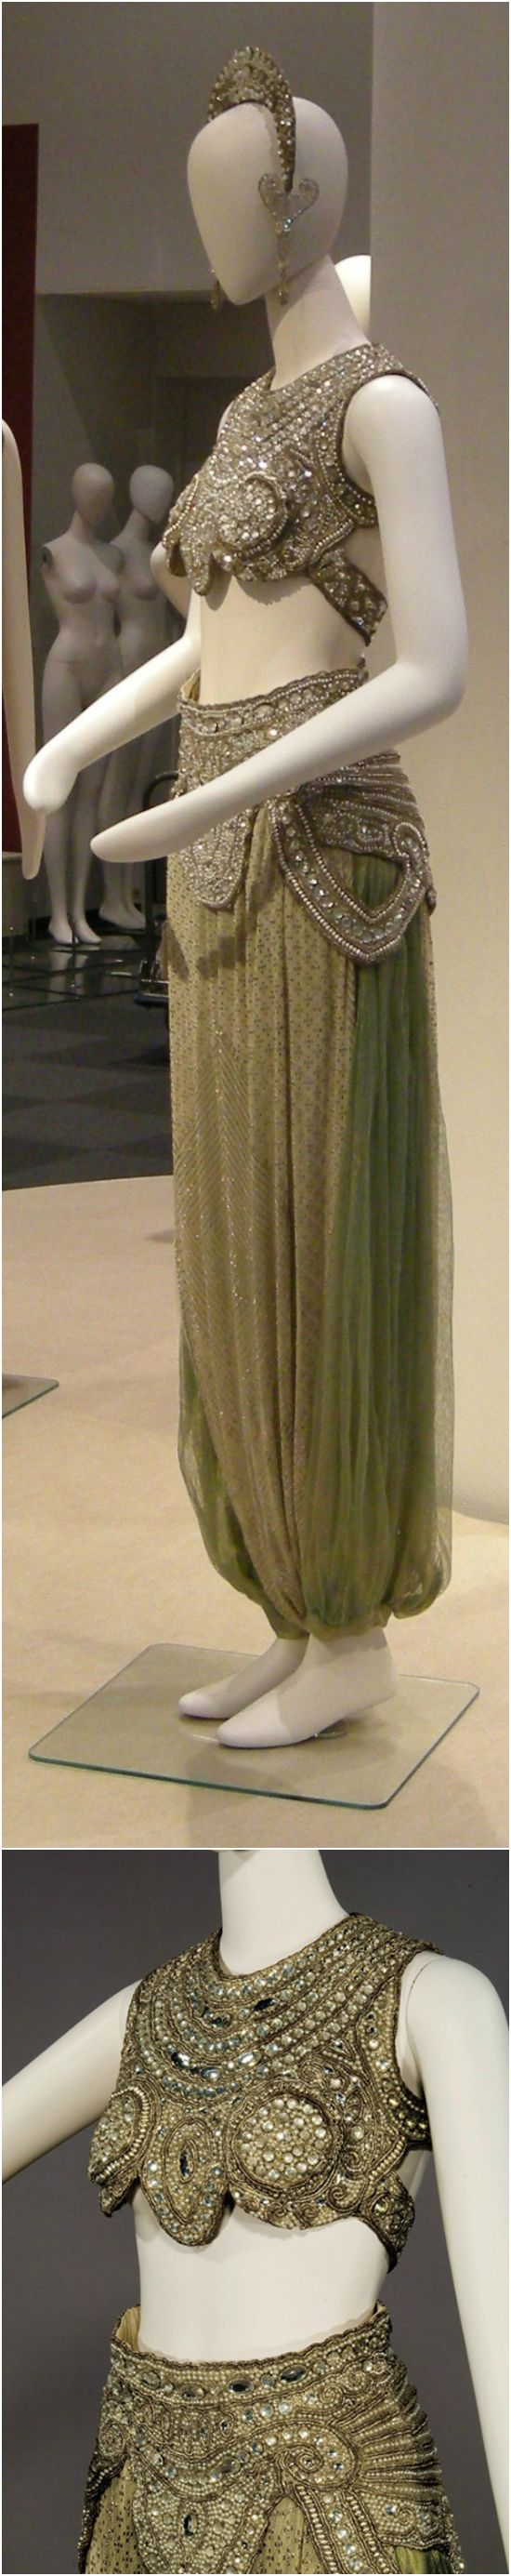 Evening costume by Paul Poiret, 1911-1920, at the Kobe Fashion Museum.